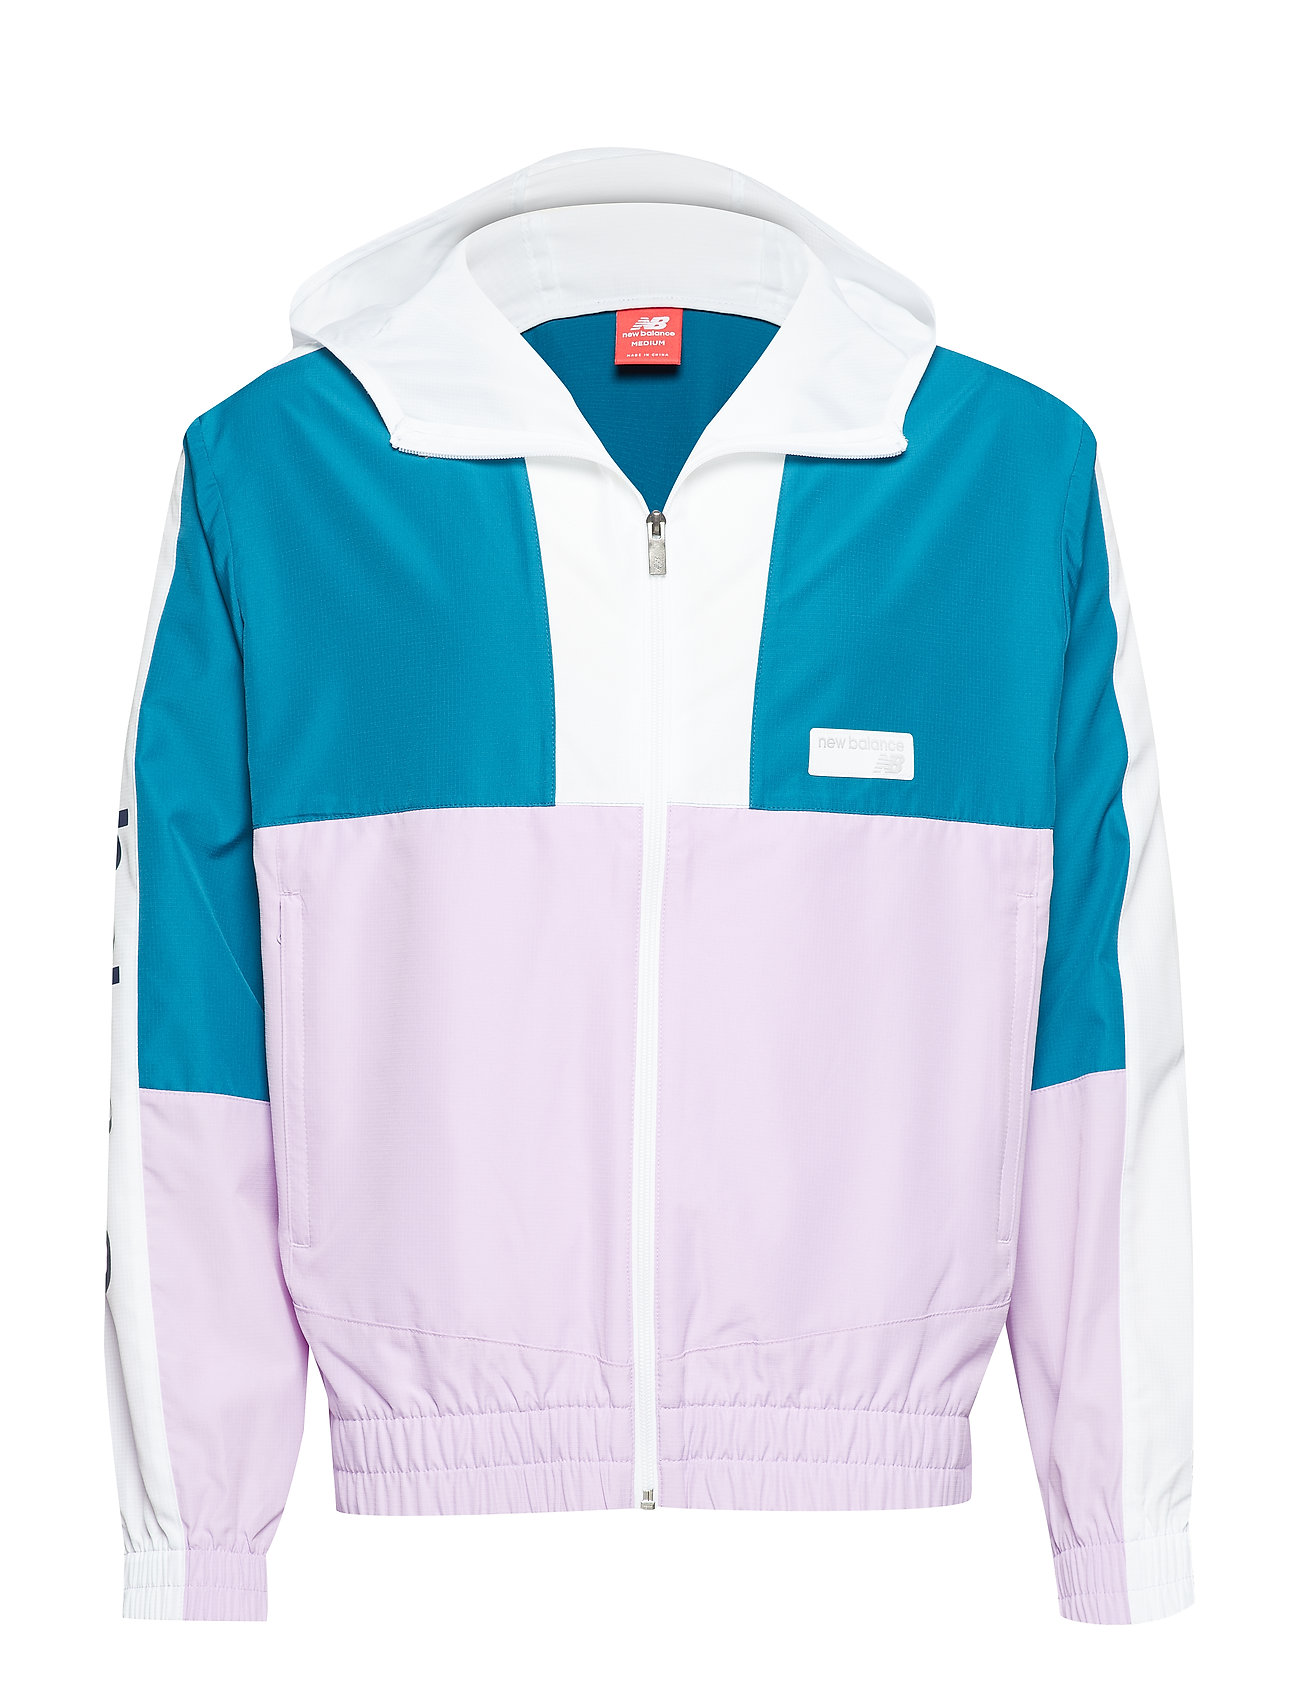 New Balance NB ATHLETICS WINDBREAKER - DKNEPTNE